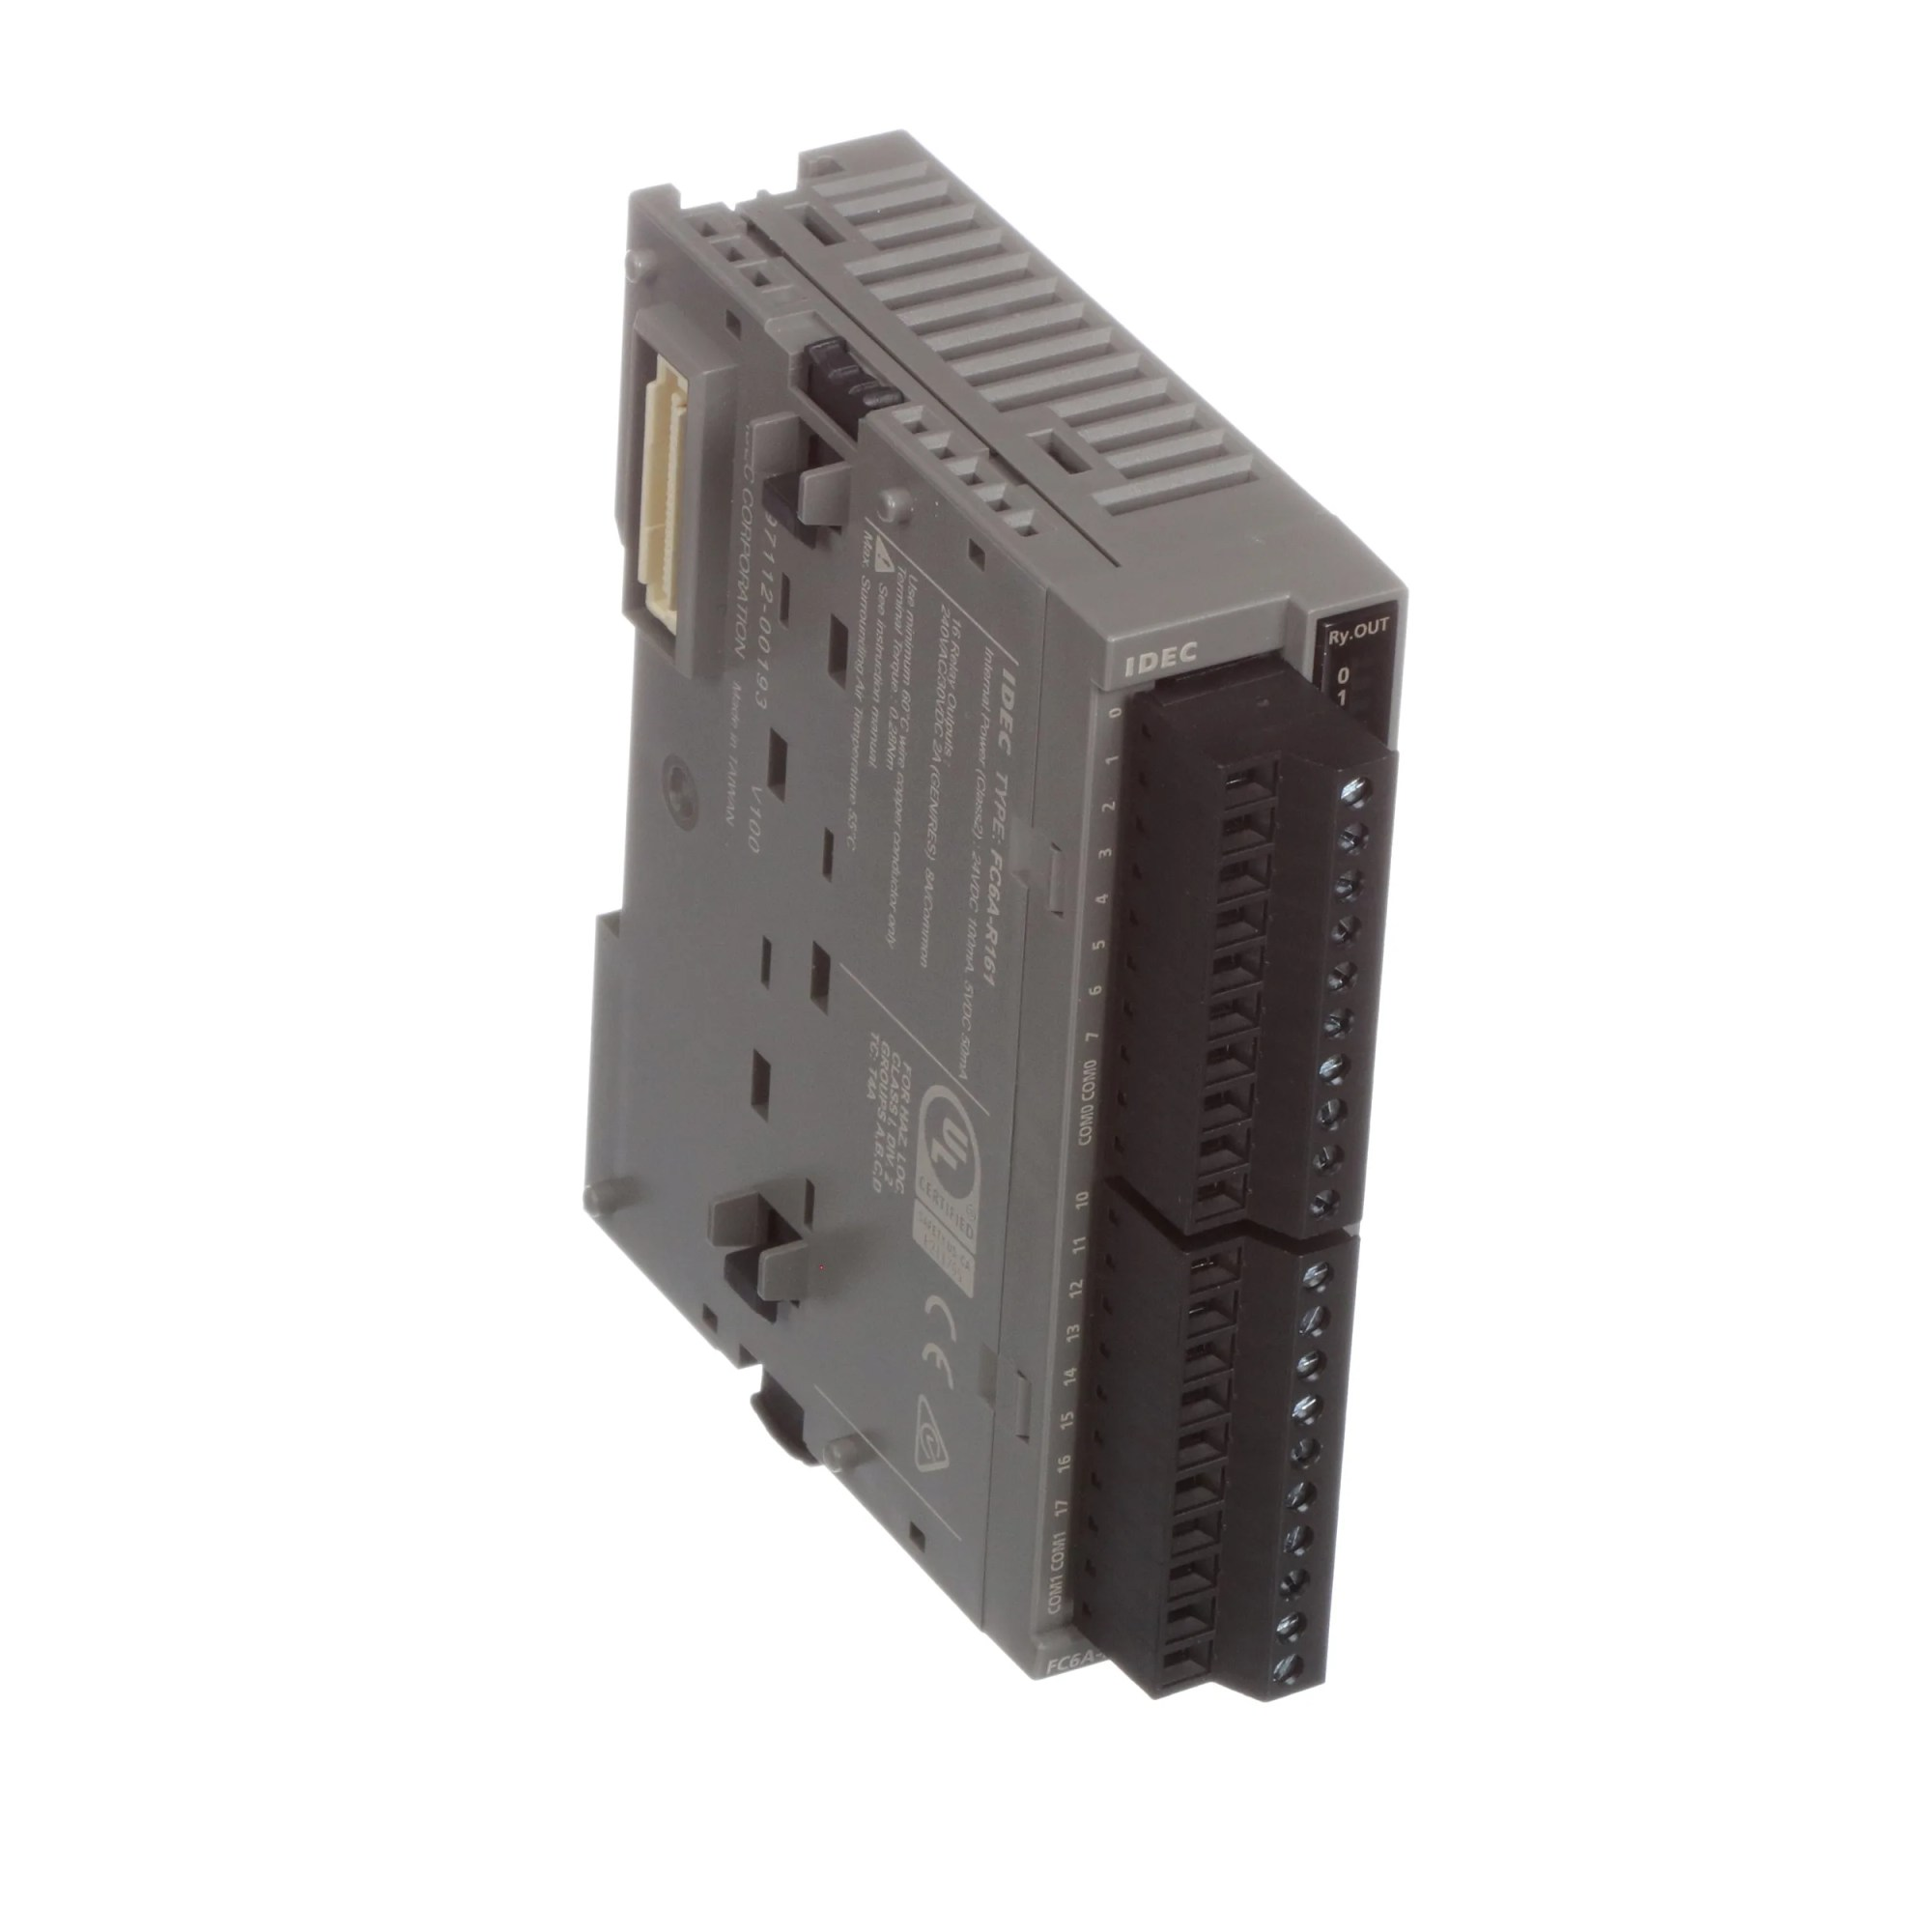 hight resolution of idec corporation fc6a r161 module fc6a series microsmart 24 vdc input 16 inputs relay screw allied electronics automation